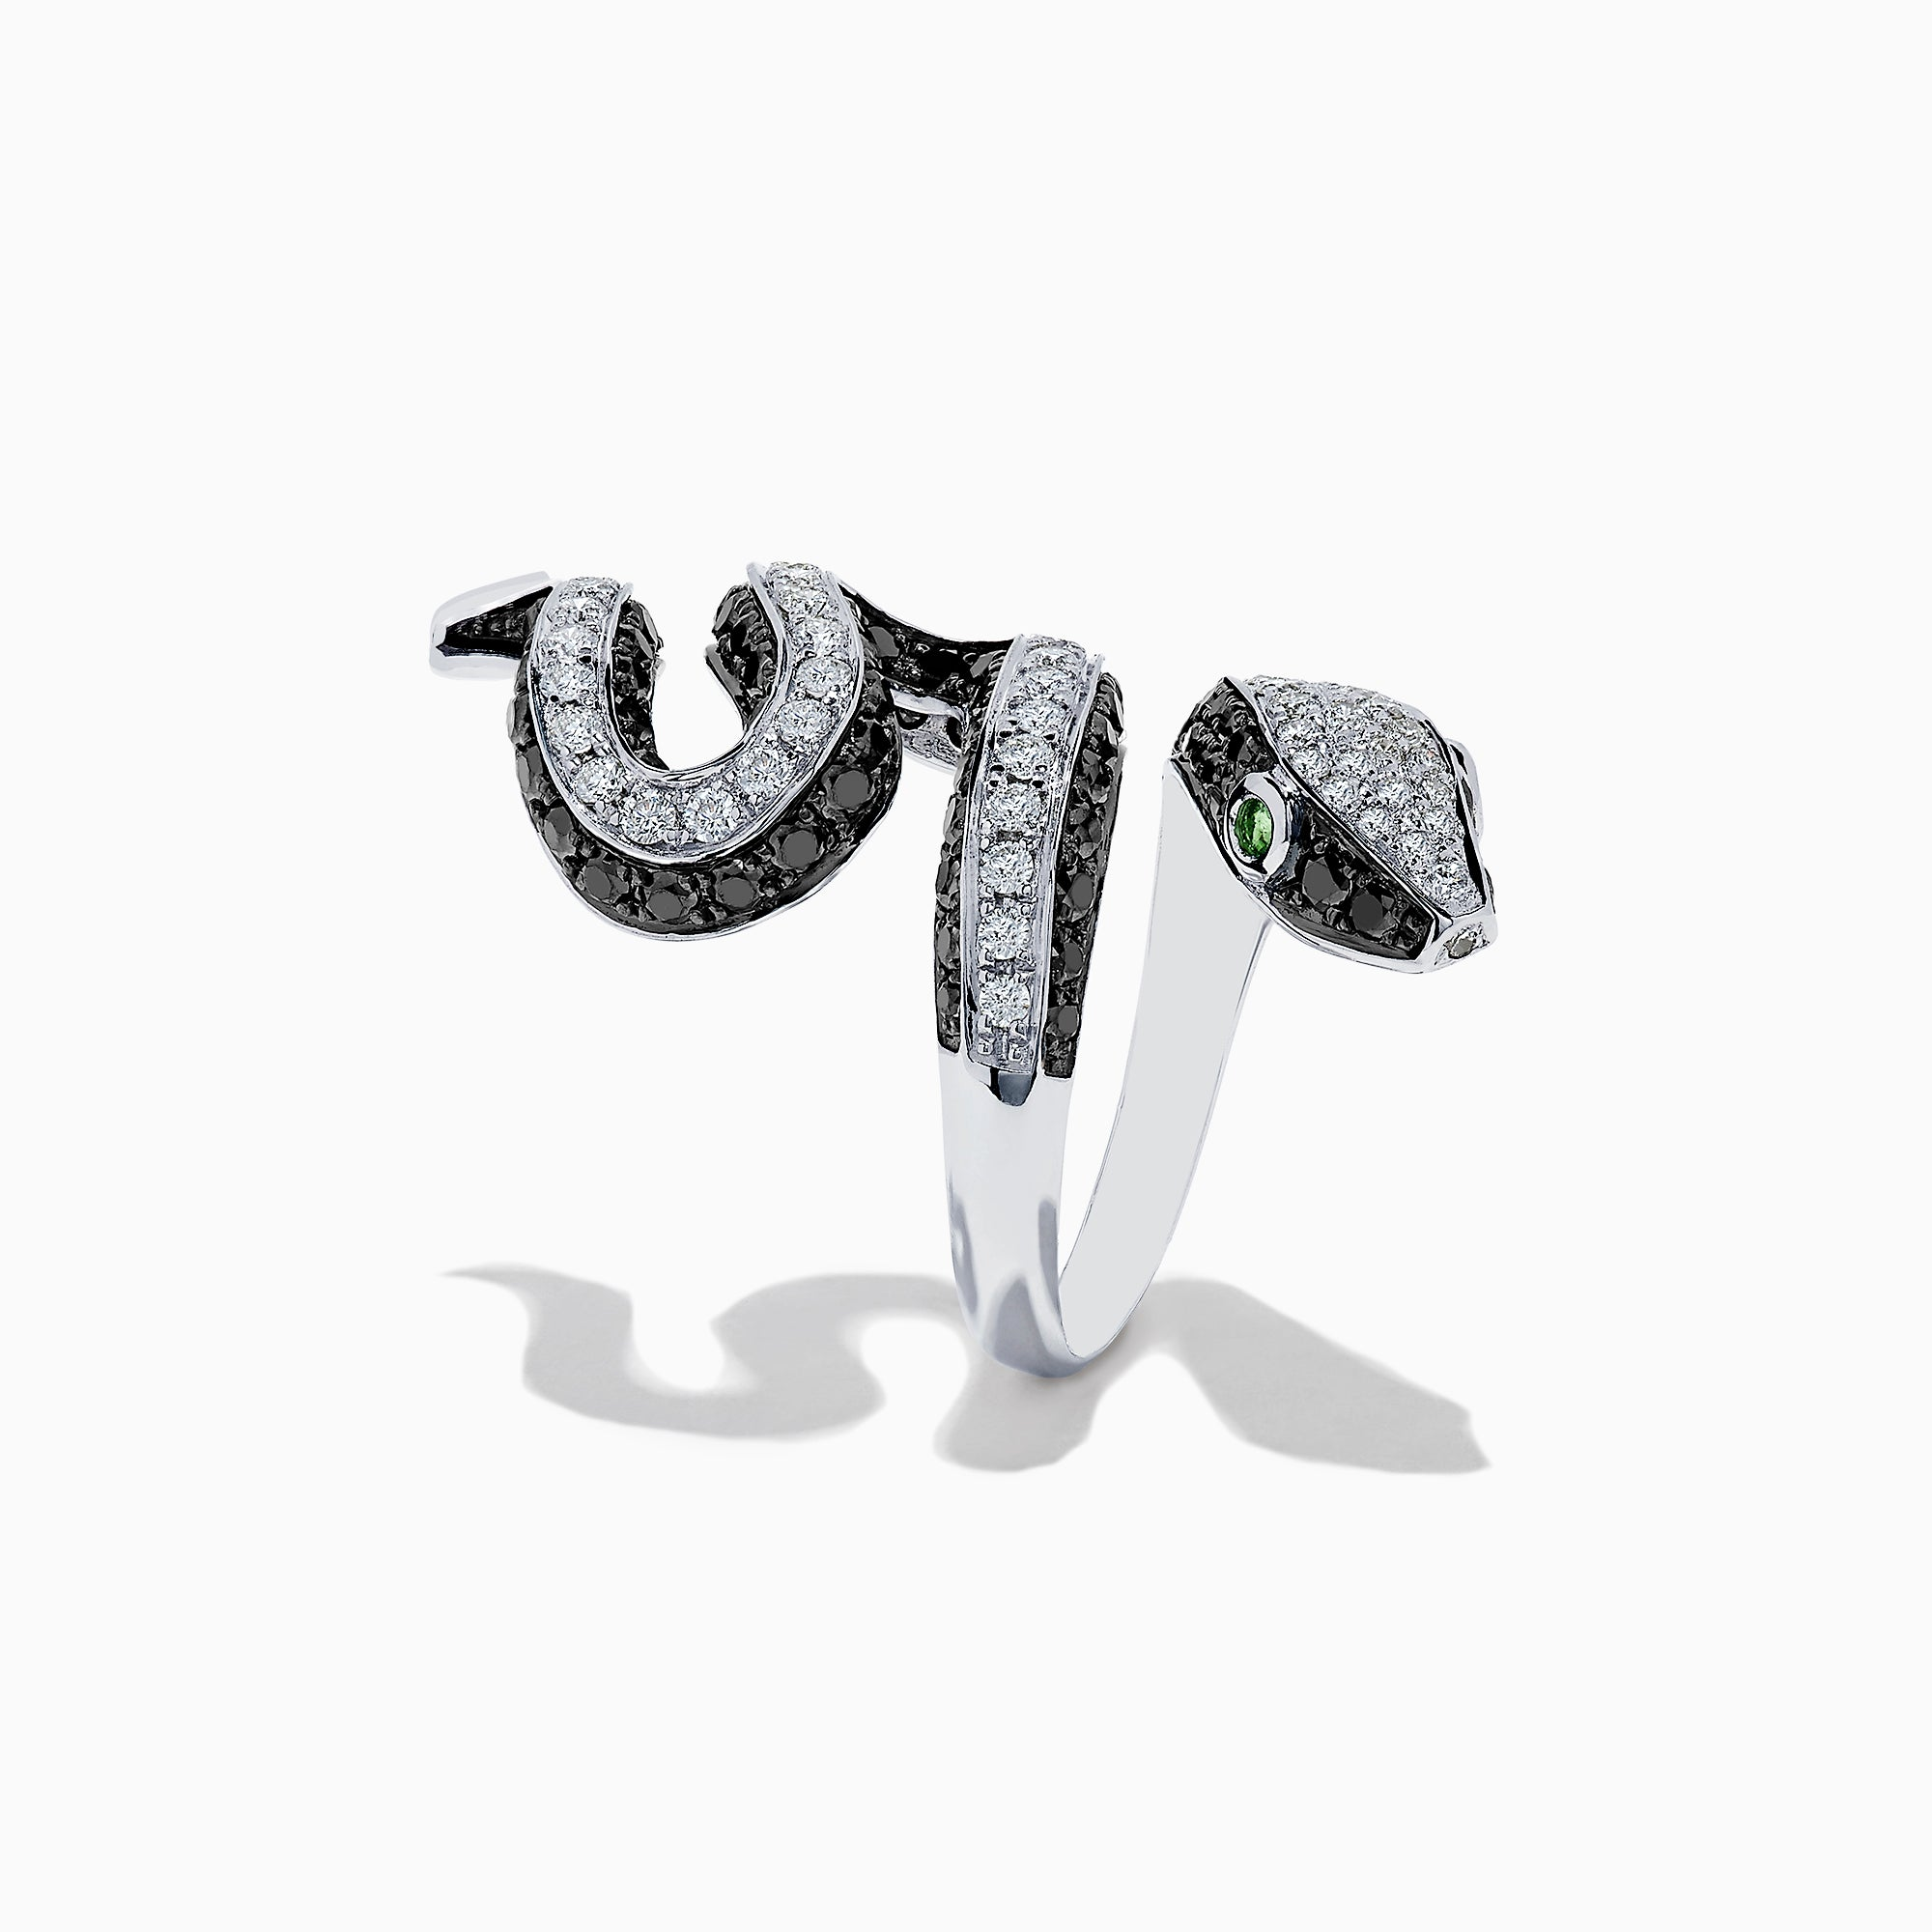 Effy Safari 14K White Gold Black and White Diamond Snake Ring, 3.25 TCW